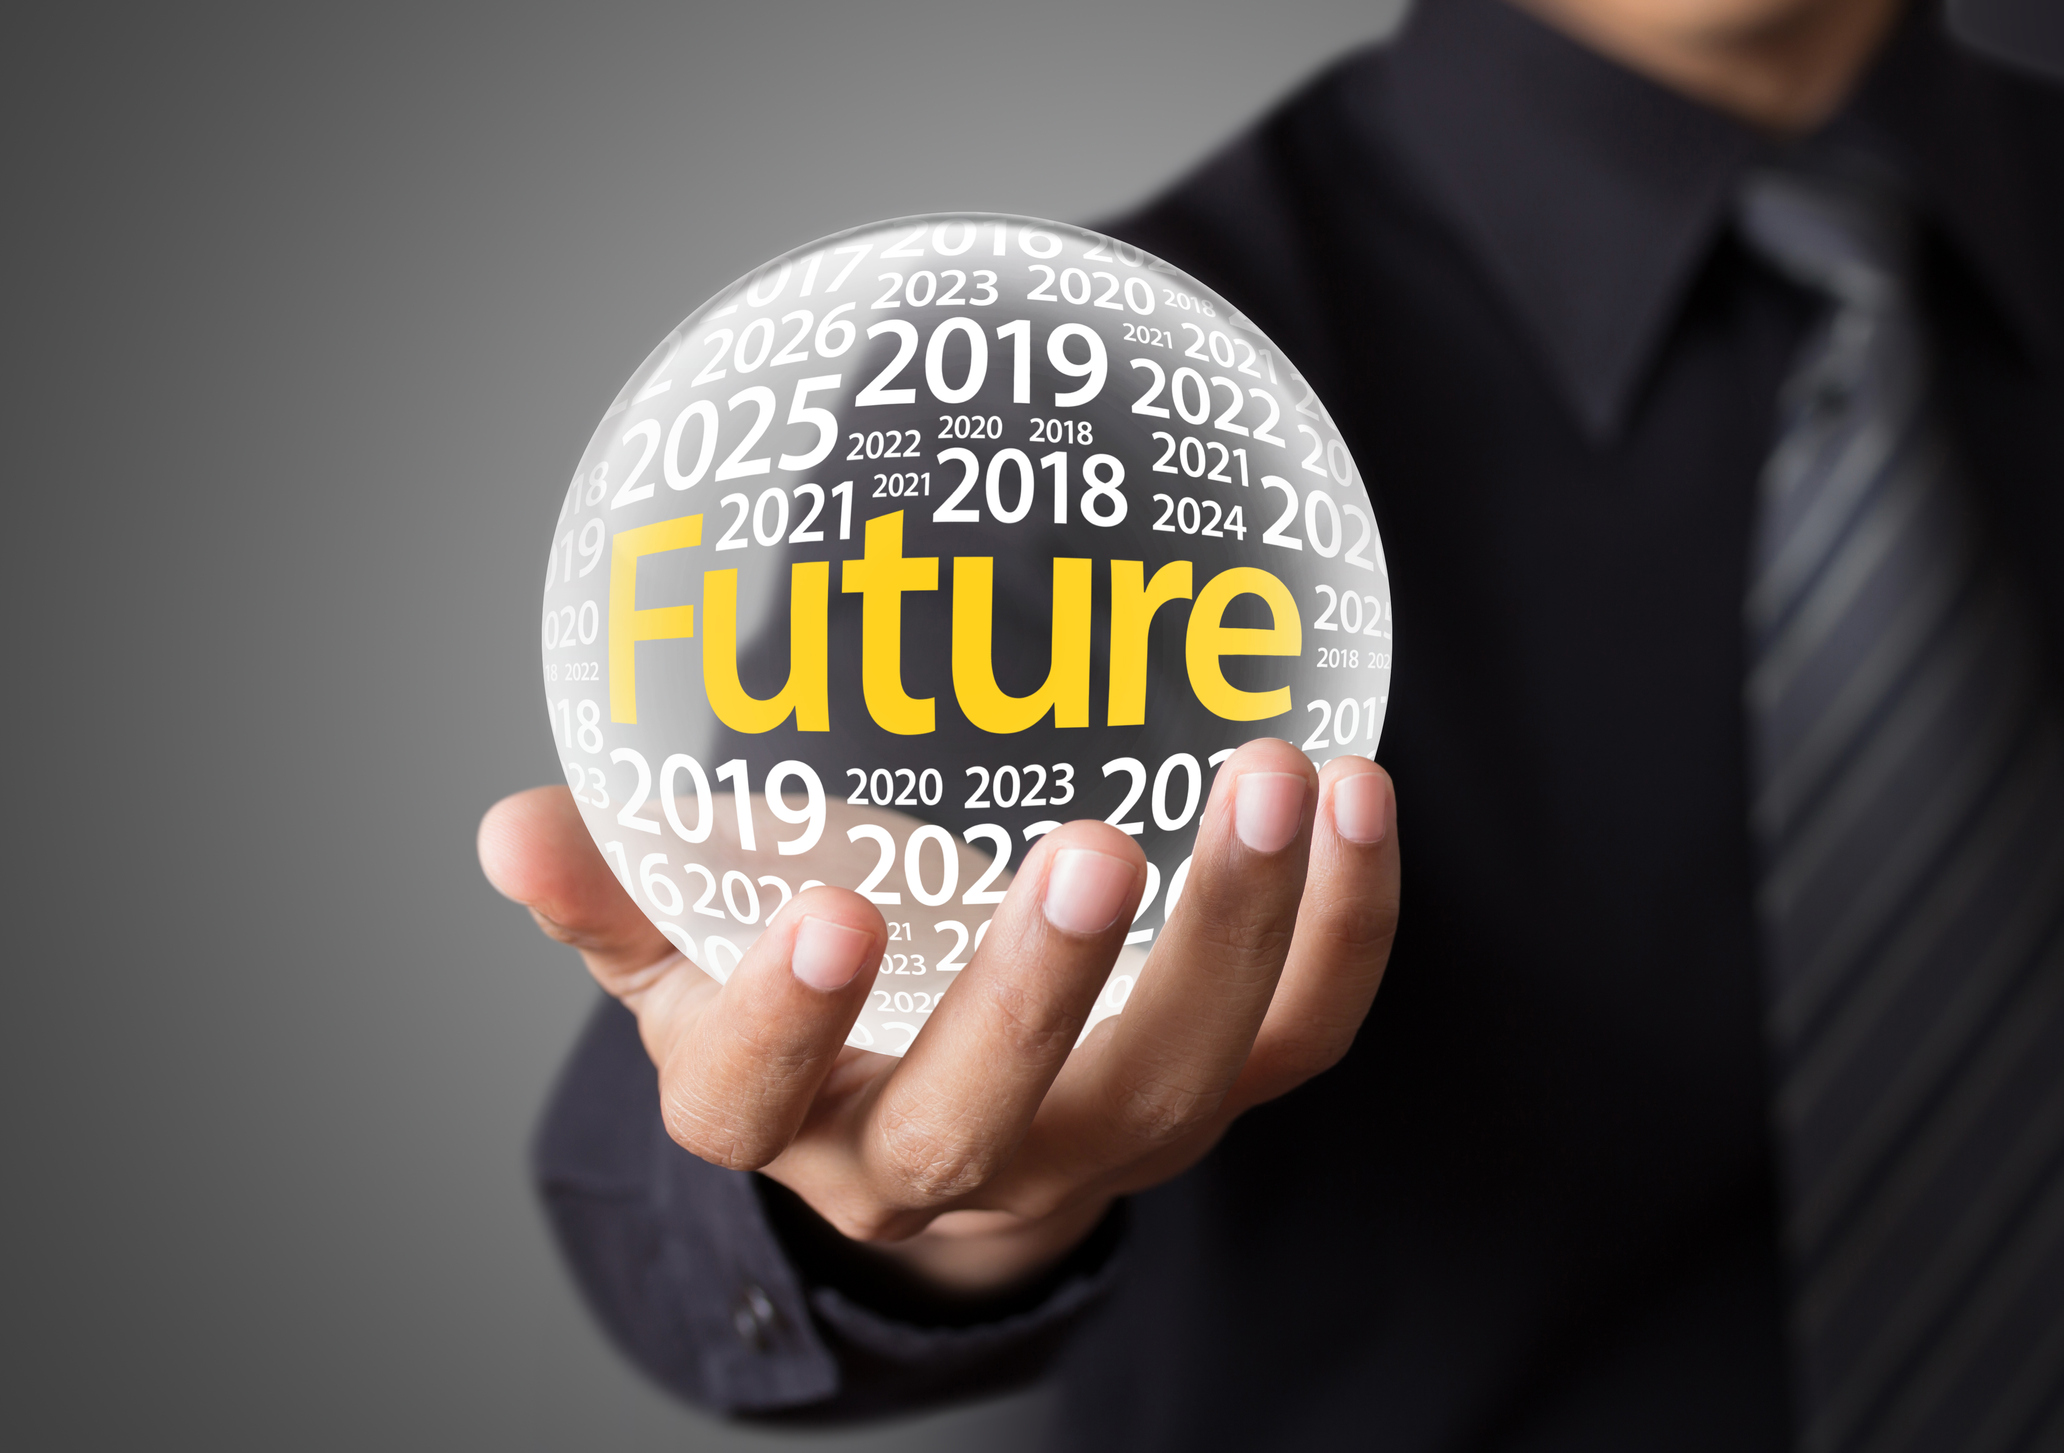 iStock - Crystal Ball Years and Future.jpg